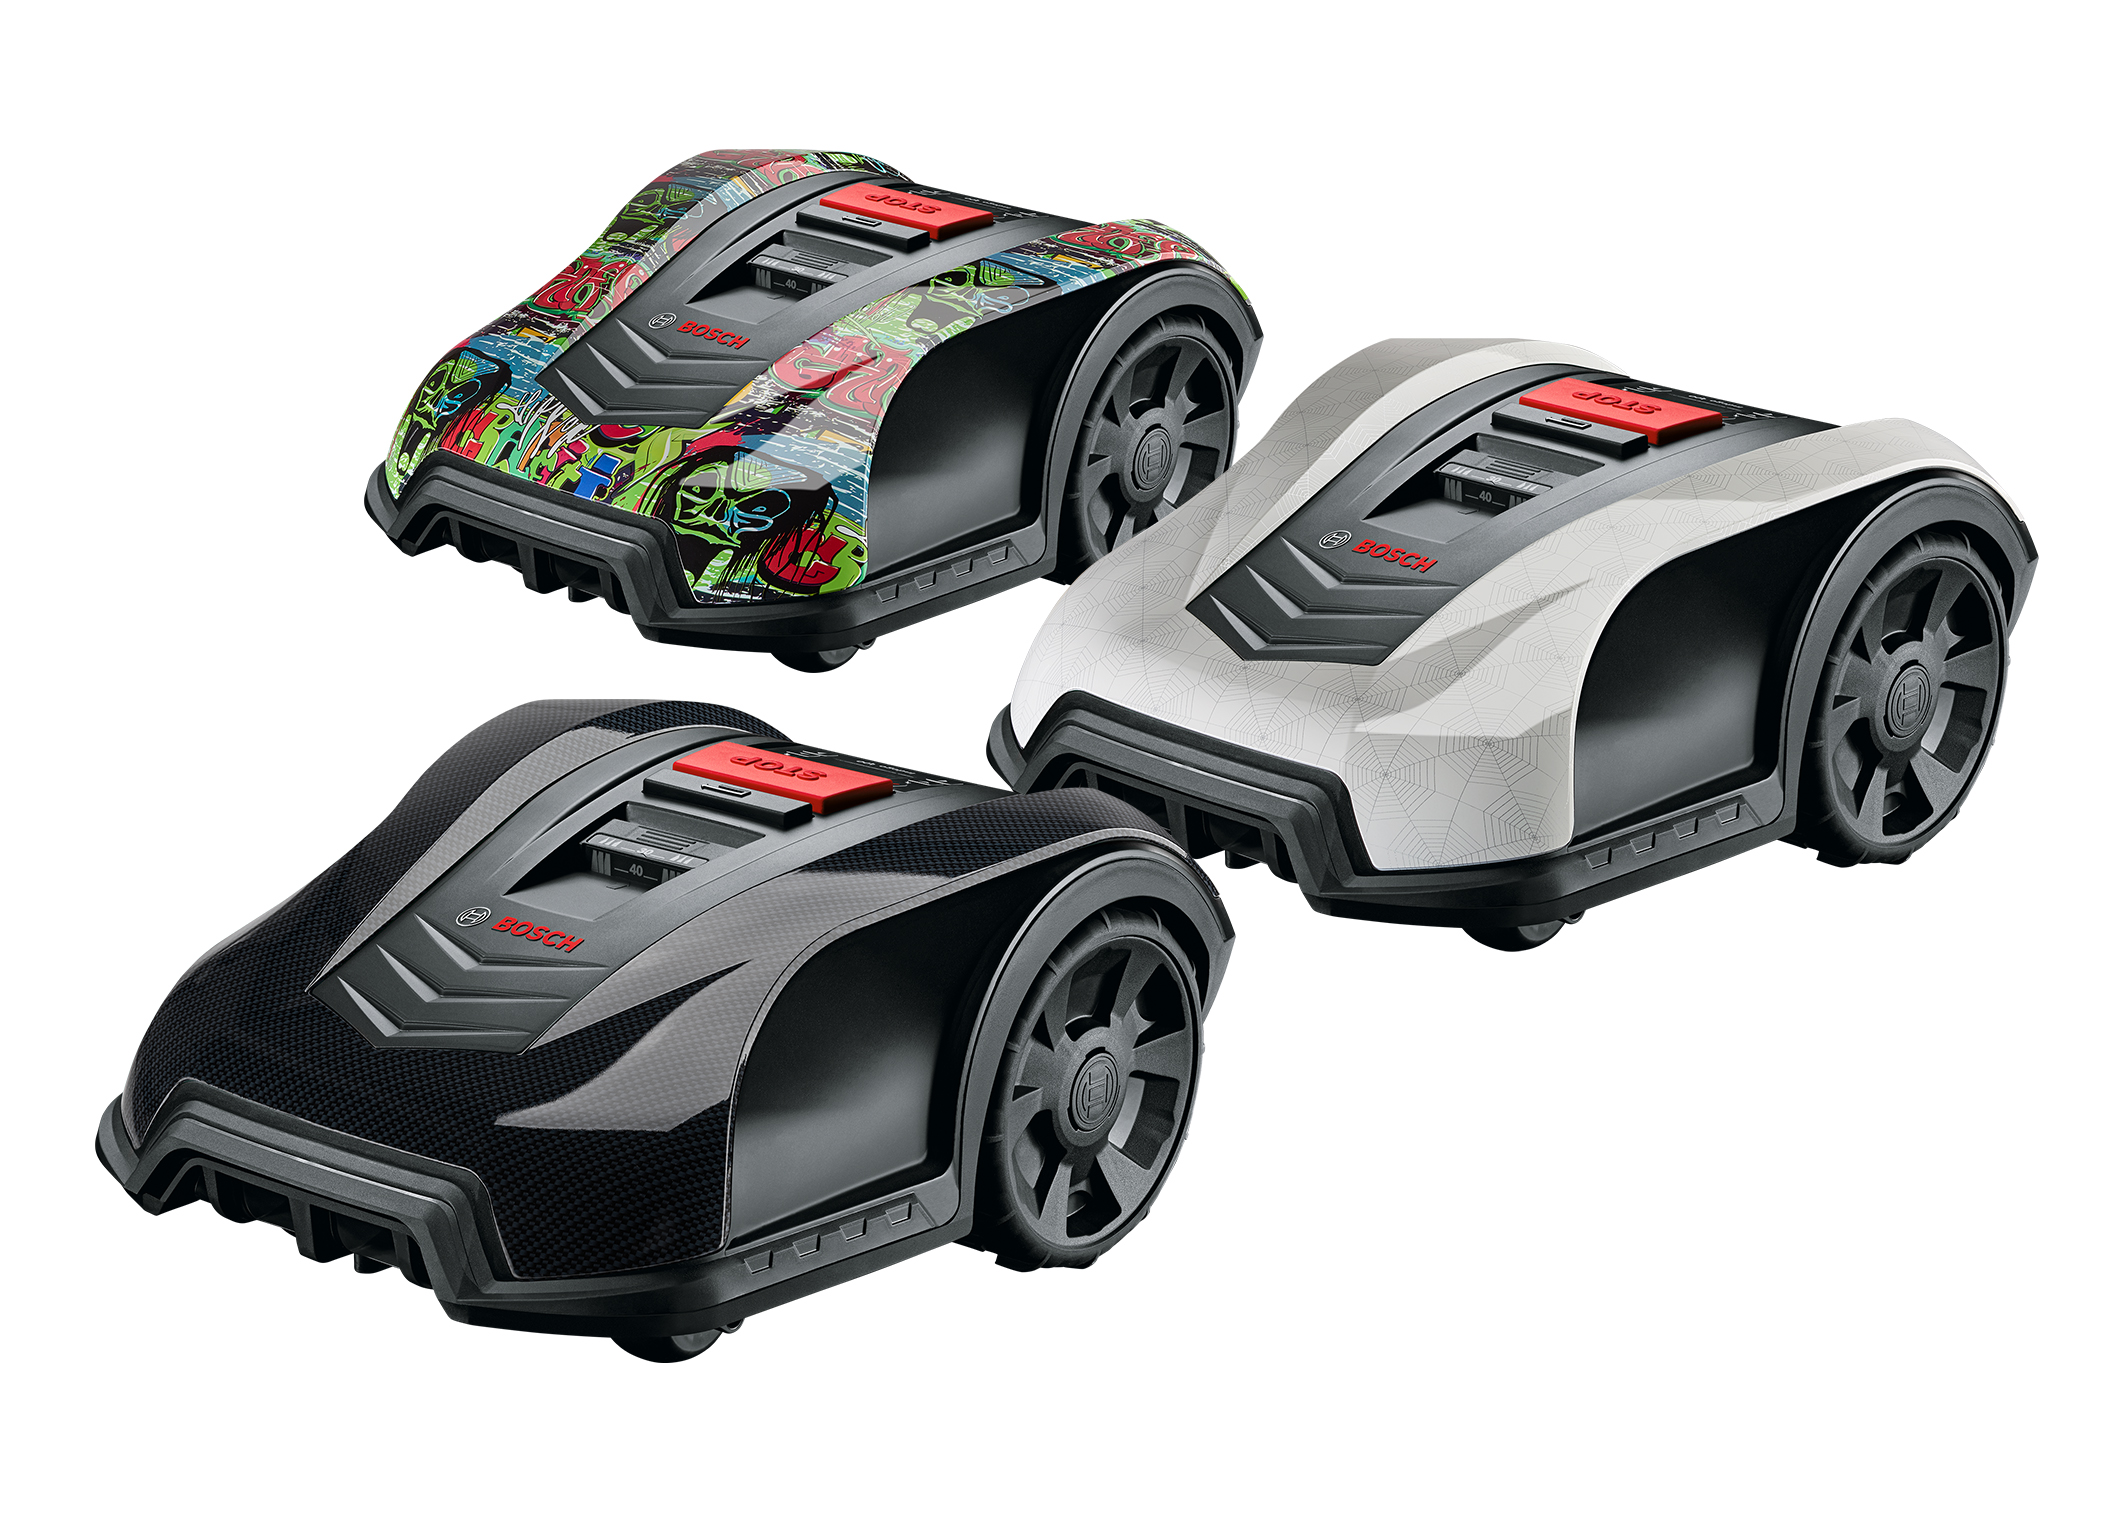 Choose the perfect outfit for your robotic lawnmower: Personal touch with HydroGraphics covers for the Bosch Indego